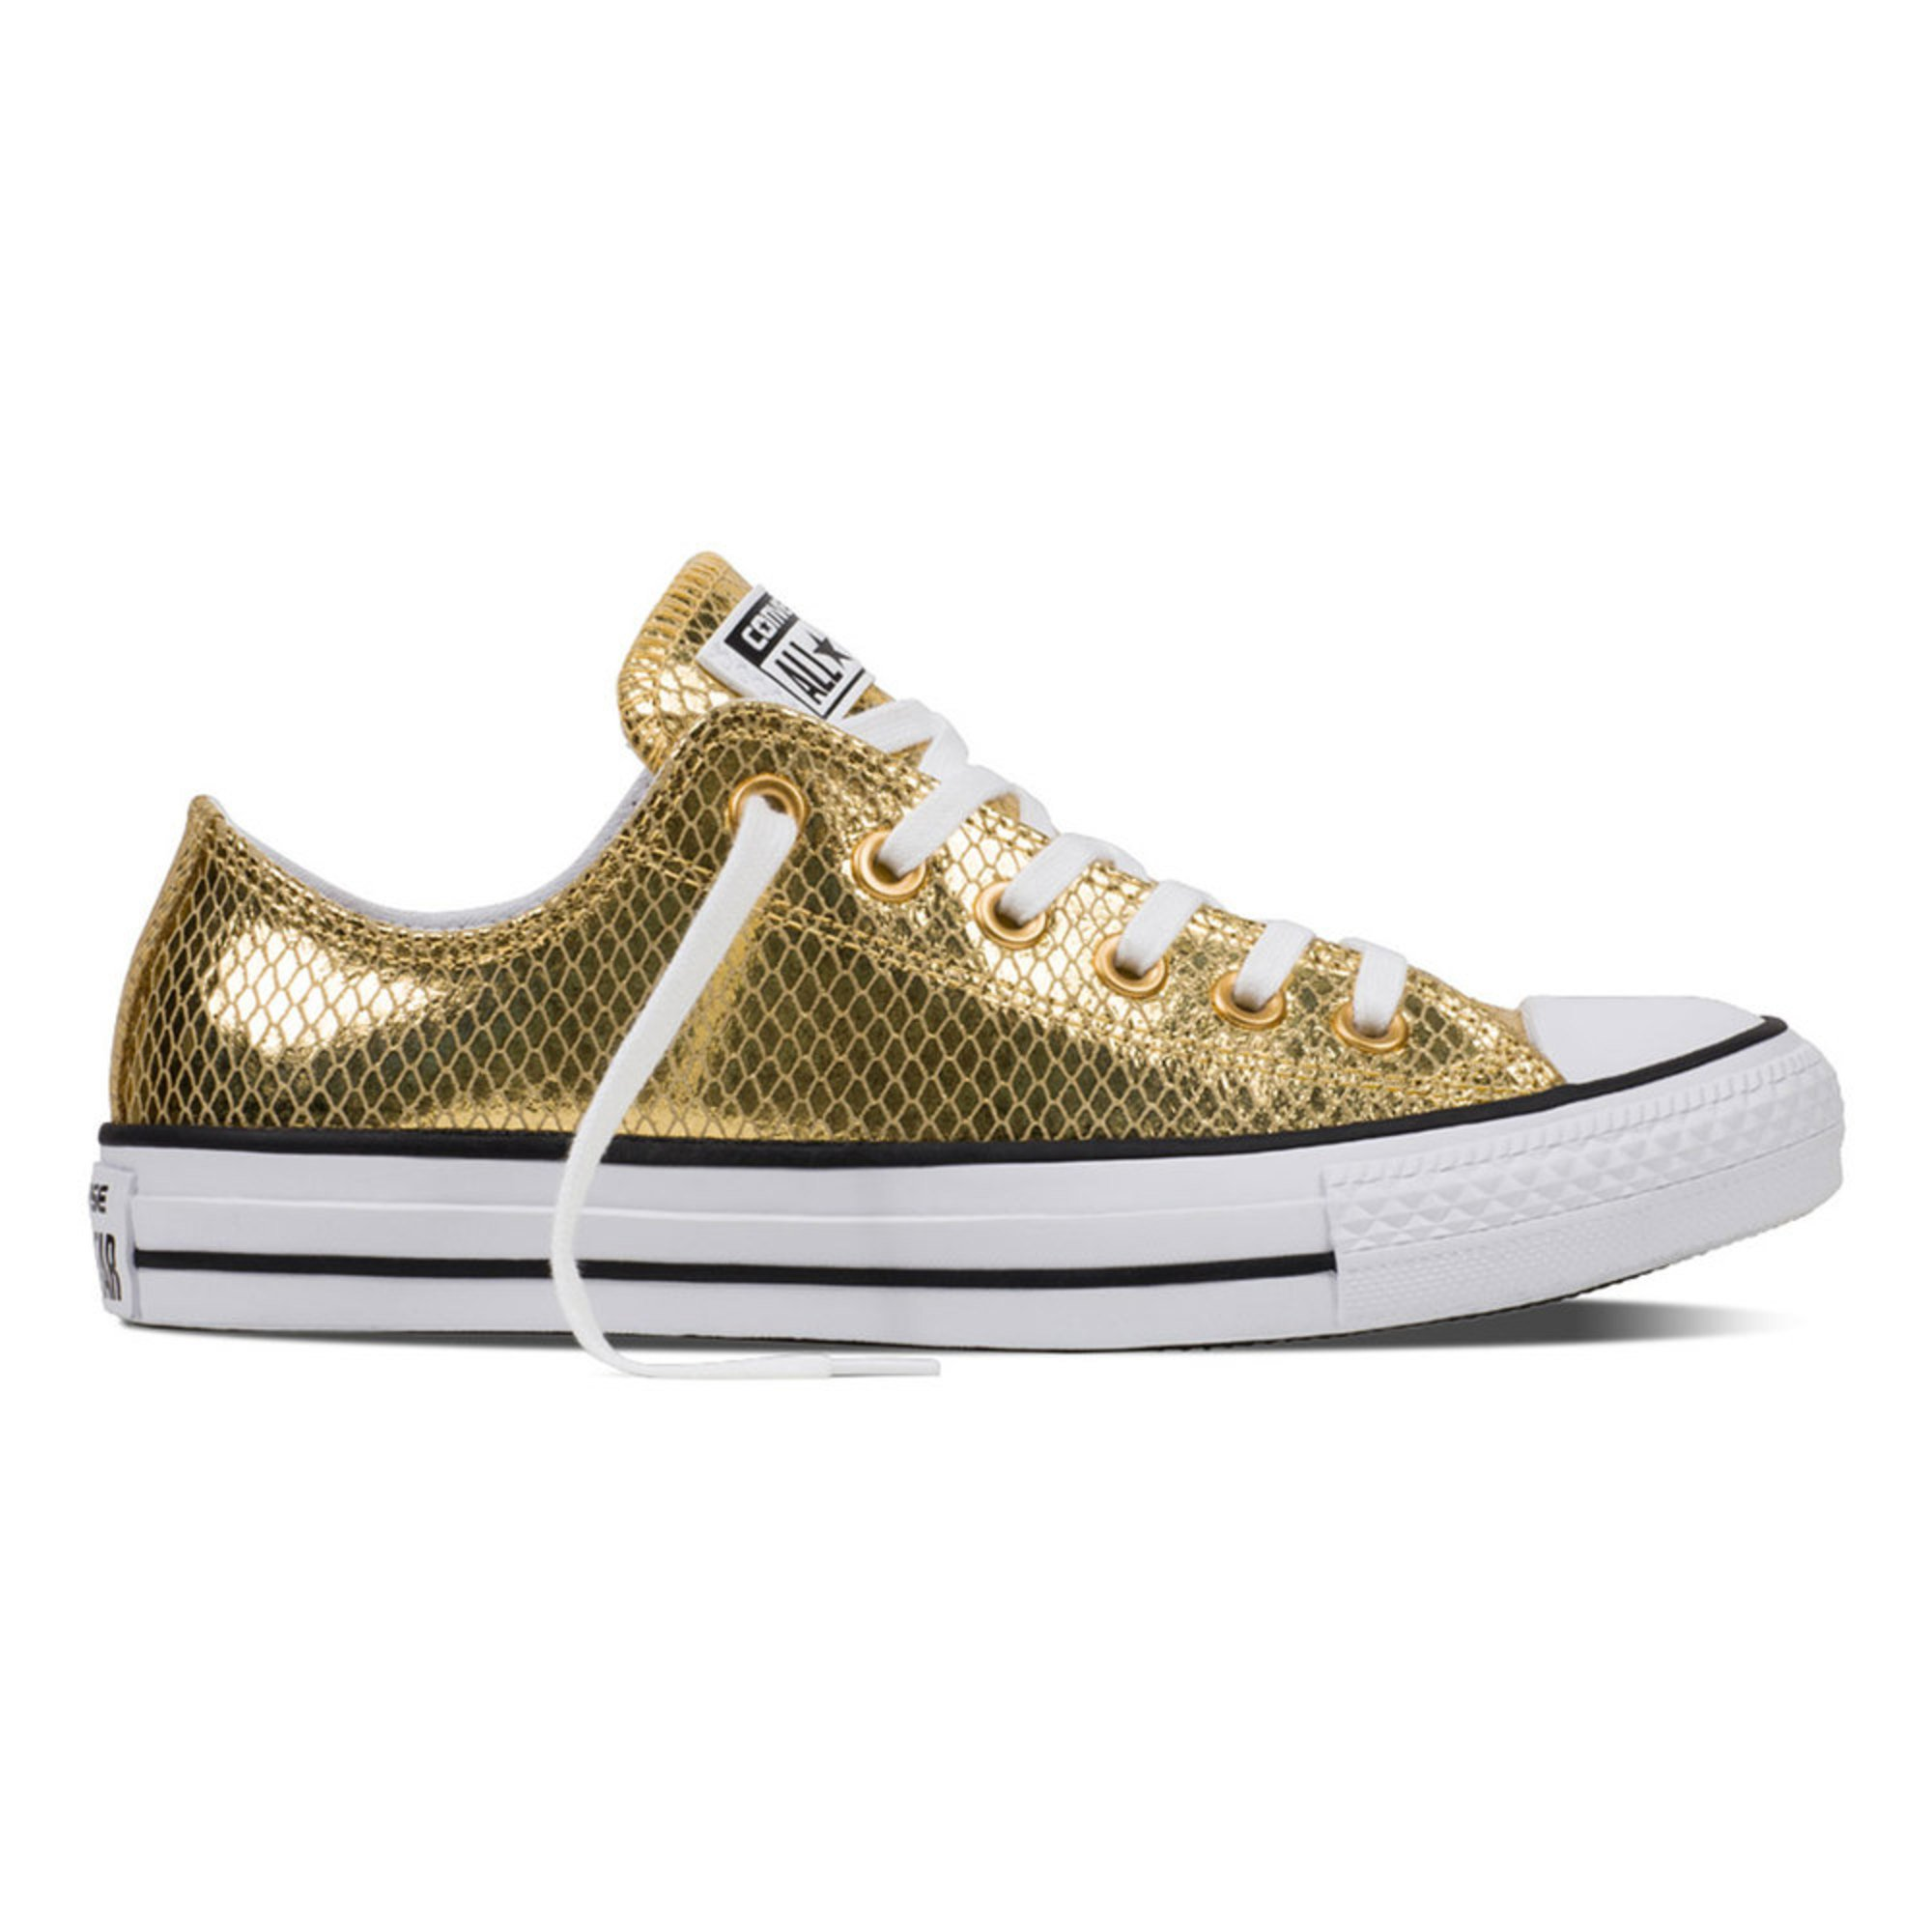 converse clearance outlet 4w27  converse clearance outlet